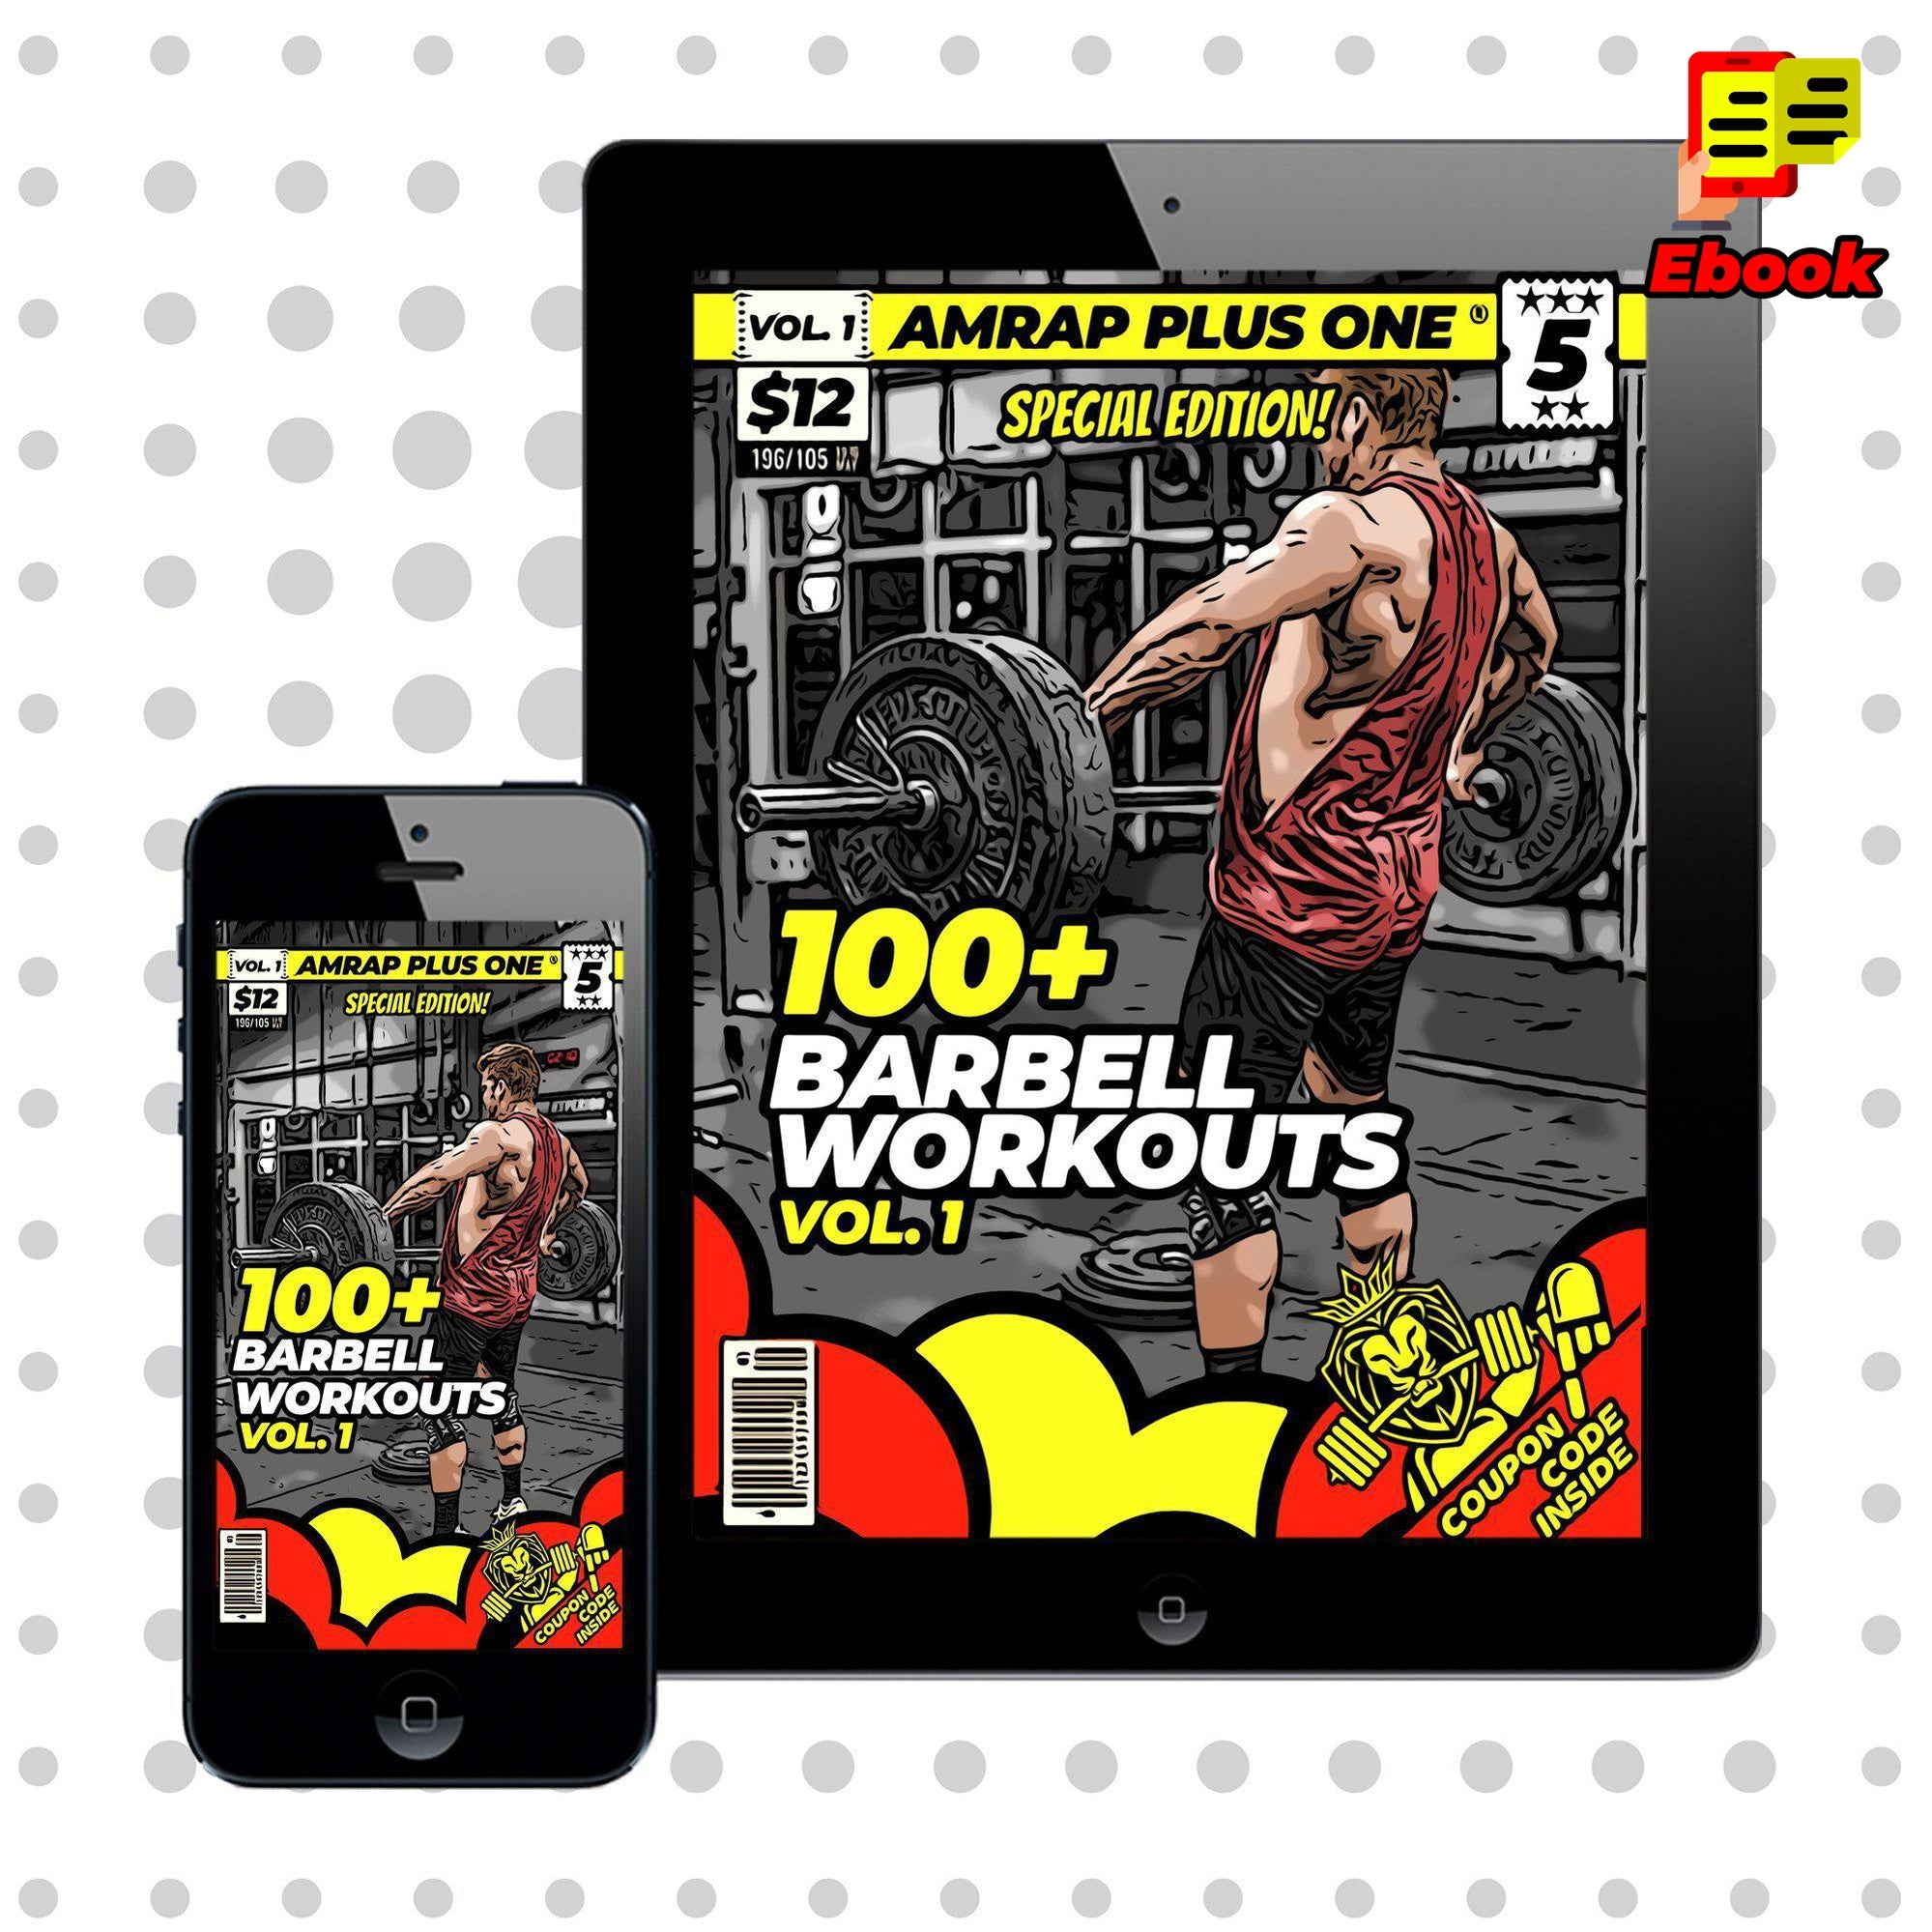 100+ Barbell Workouts Vol. 1 - AMRAP Plus One